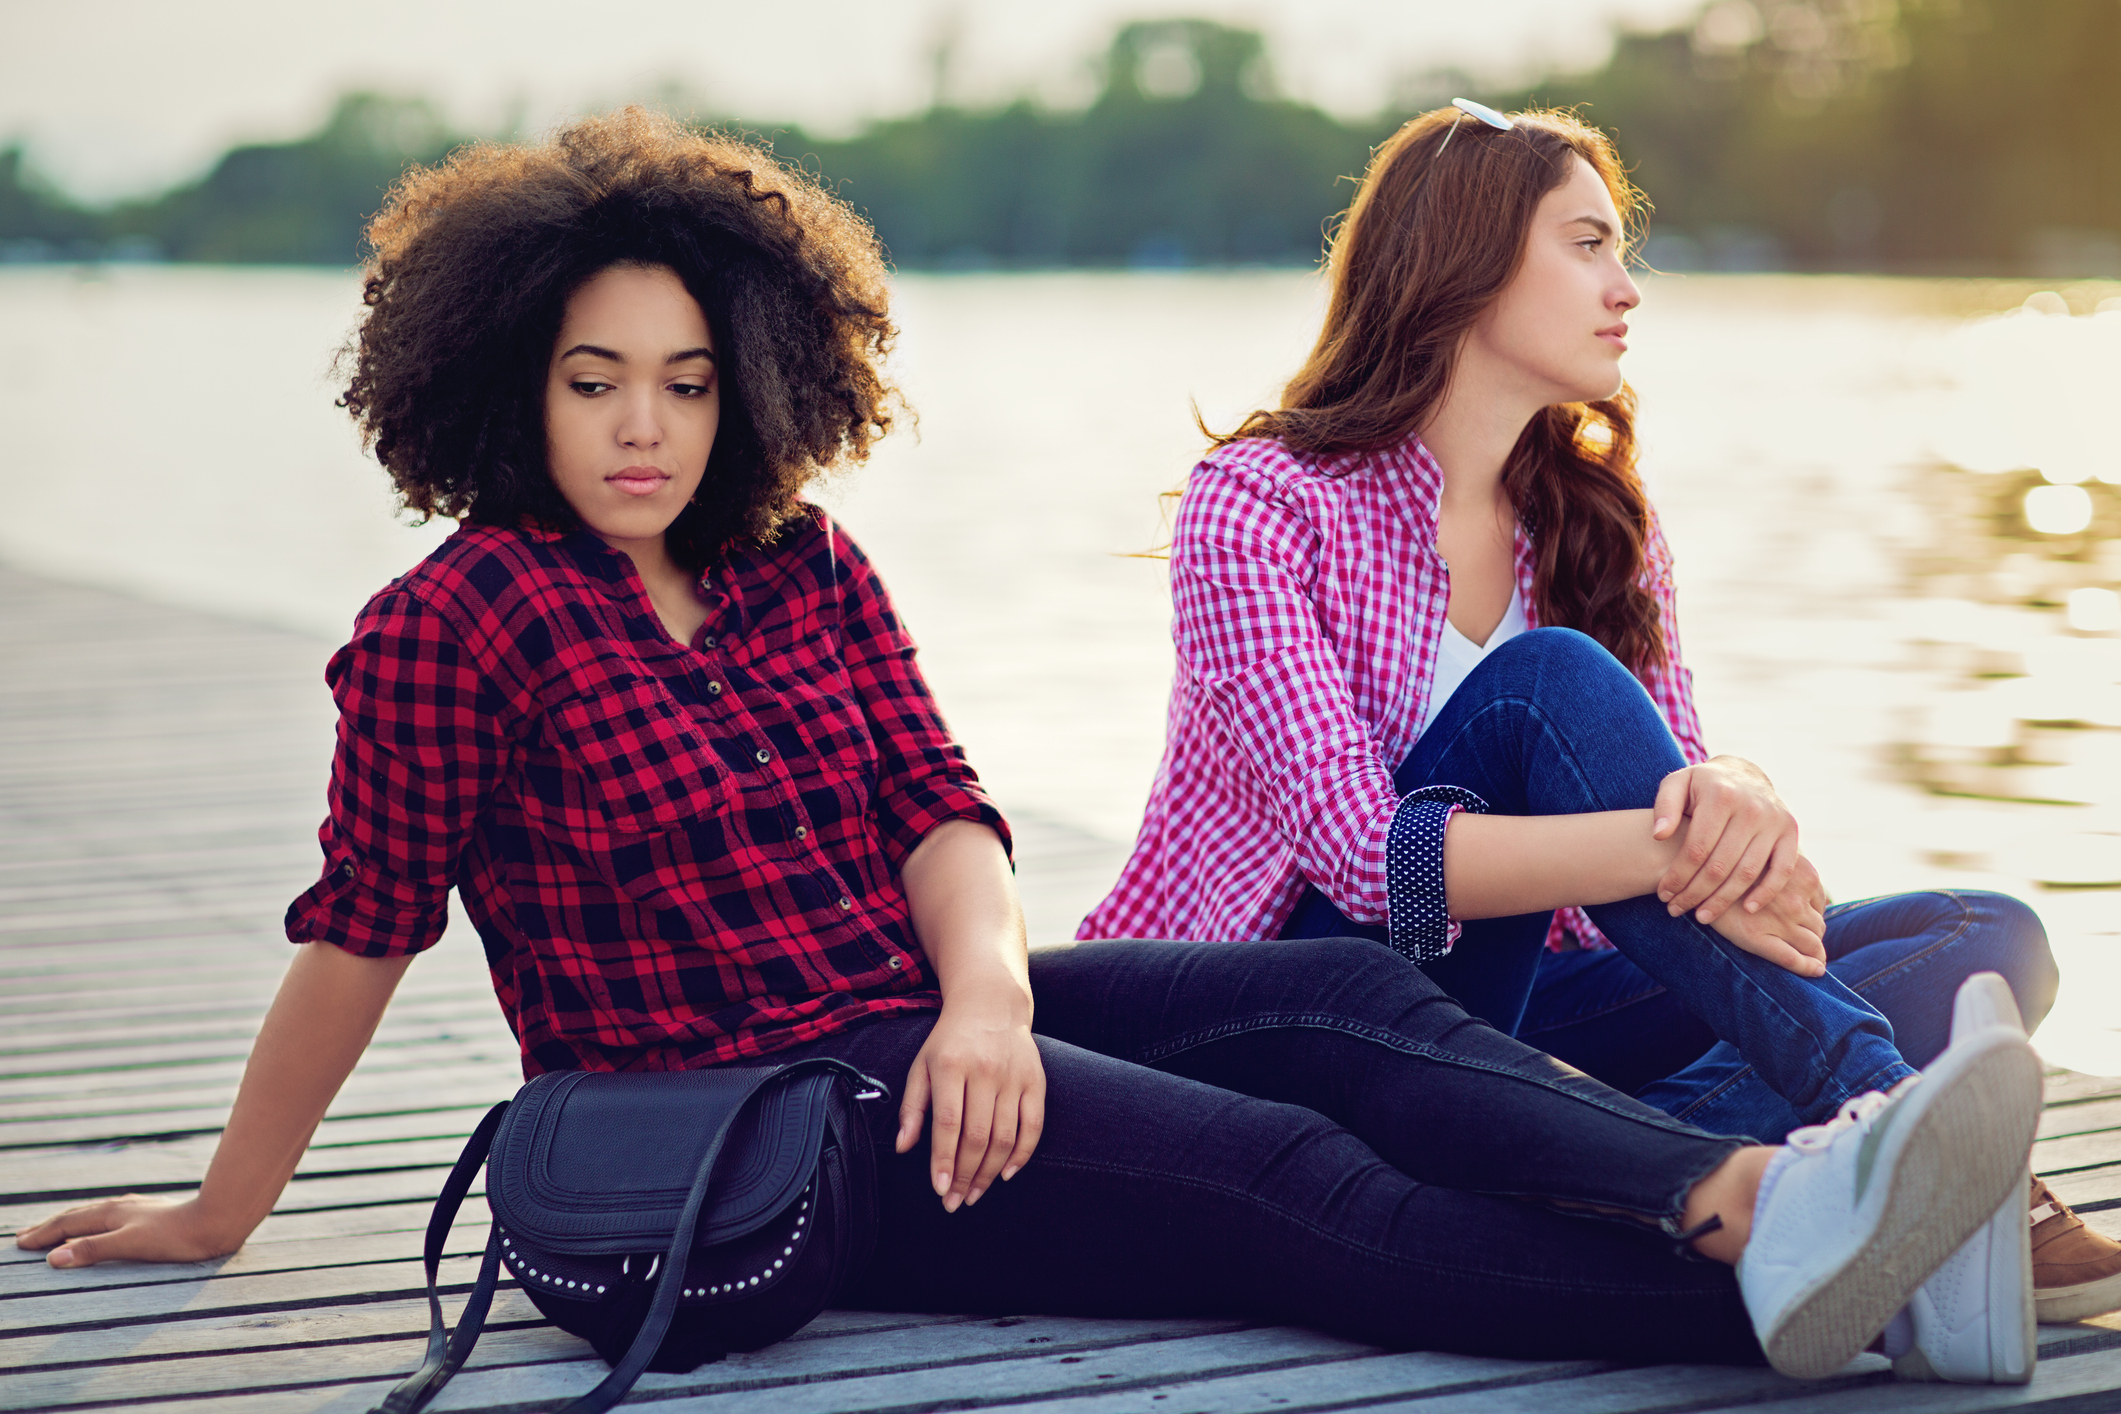 10 questions you should ask your best friend if you're not getting along right now